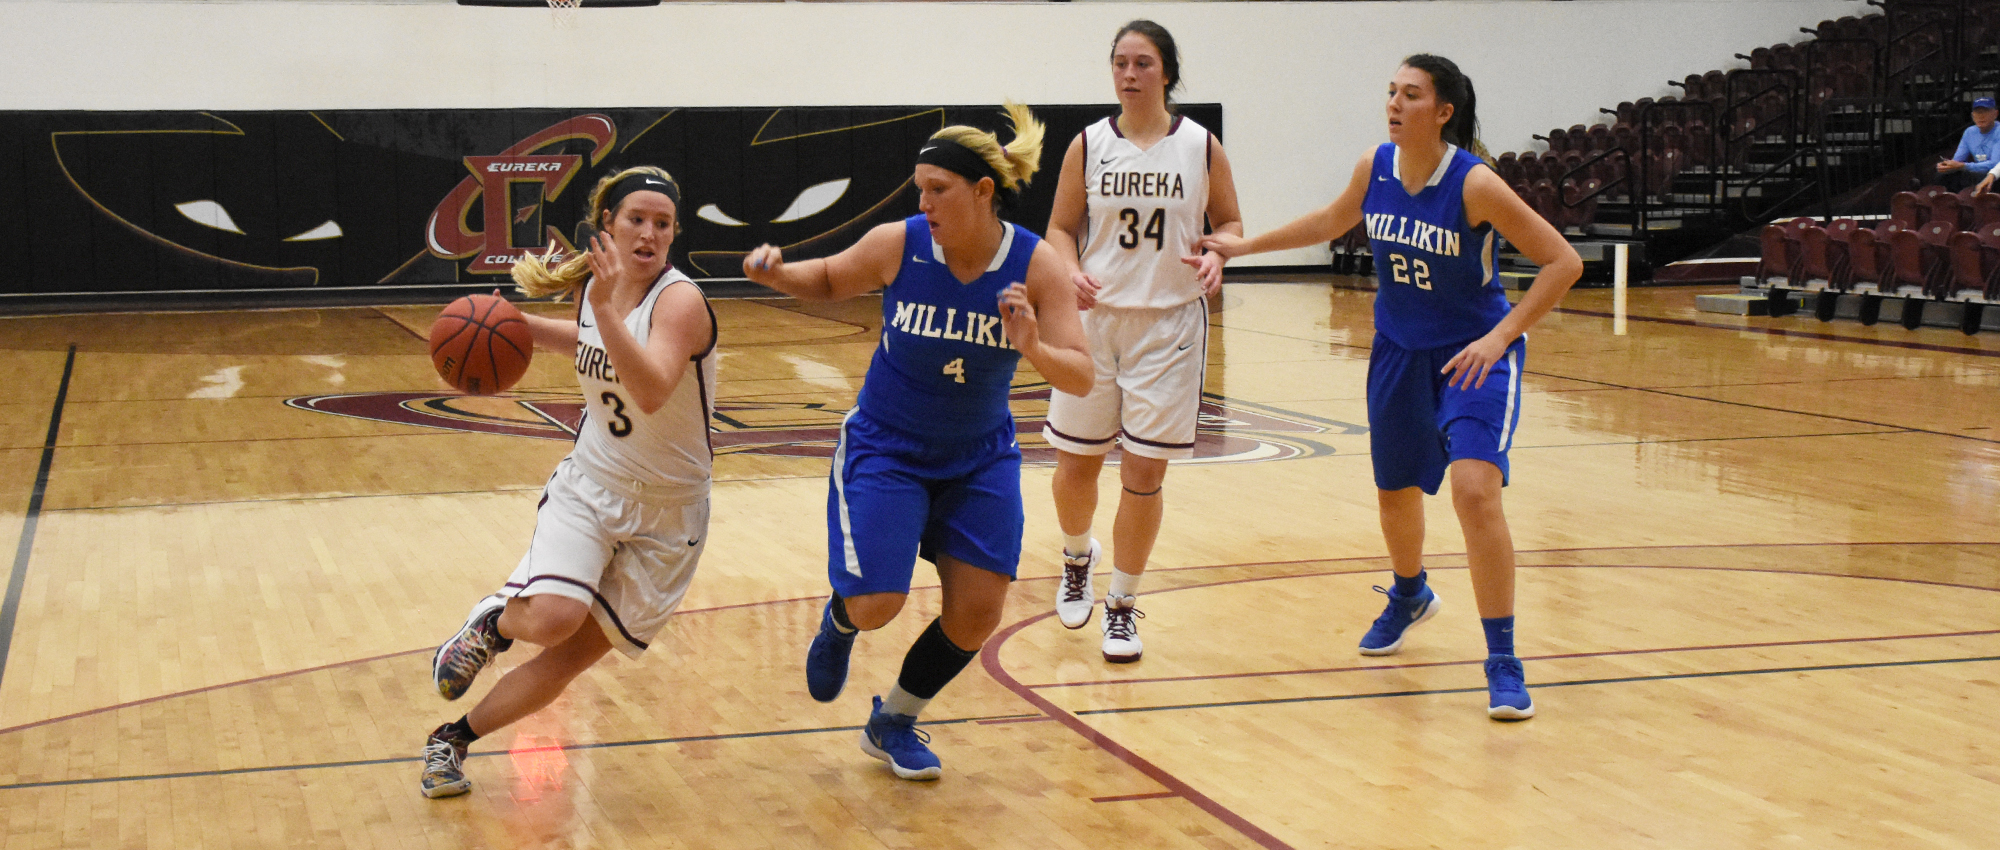 Millikin Pulls Away From Eureka, 82-73